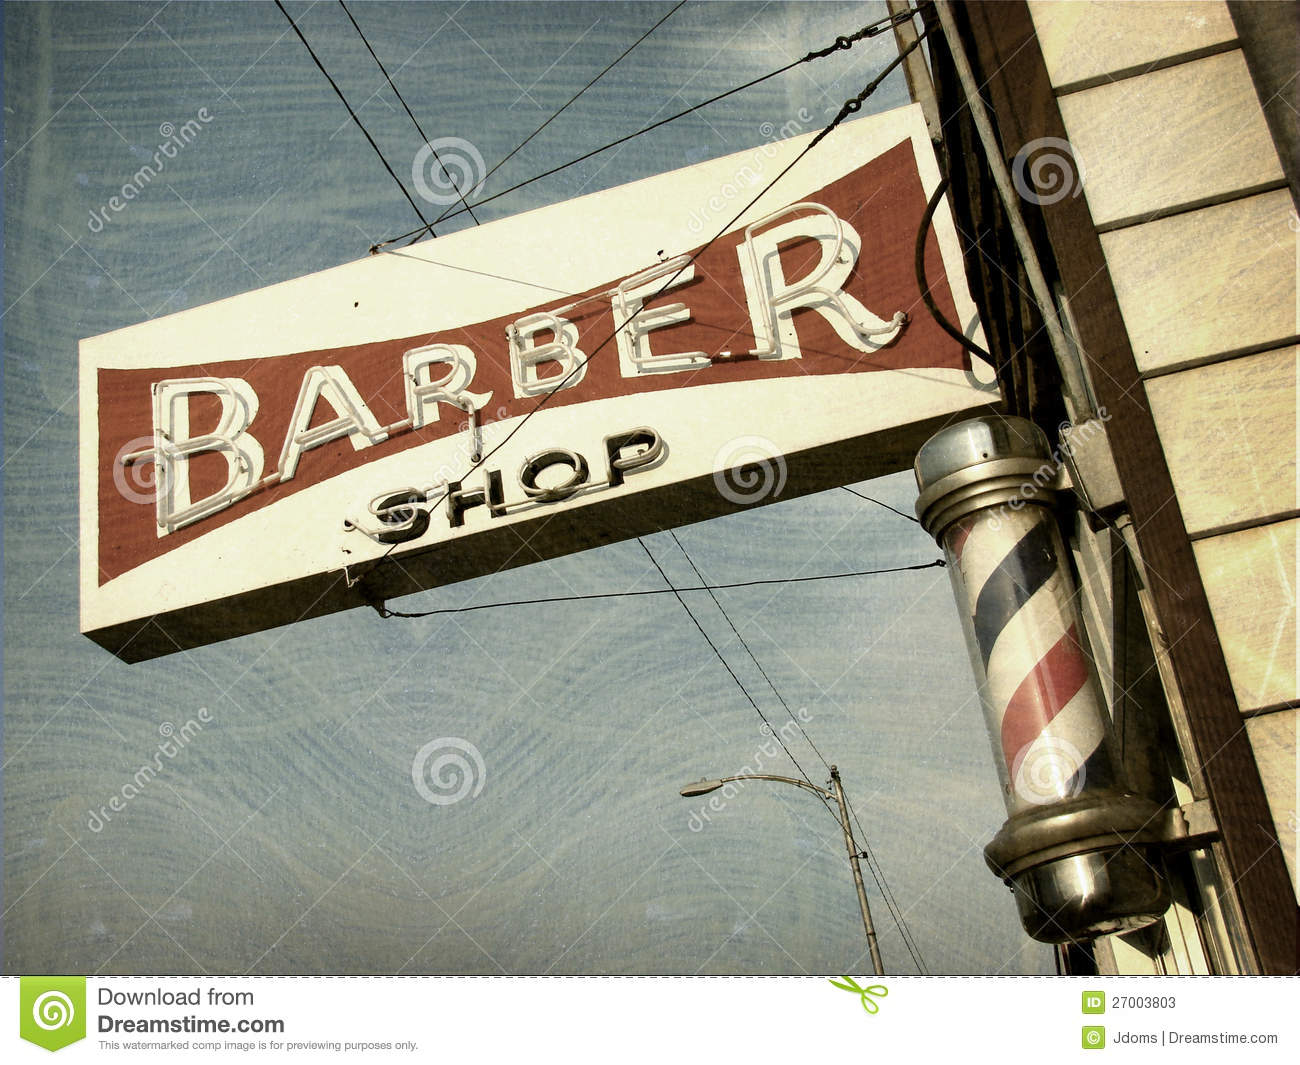 Antique barber shop sign - Vintage Barber Shop Sign